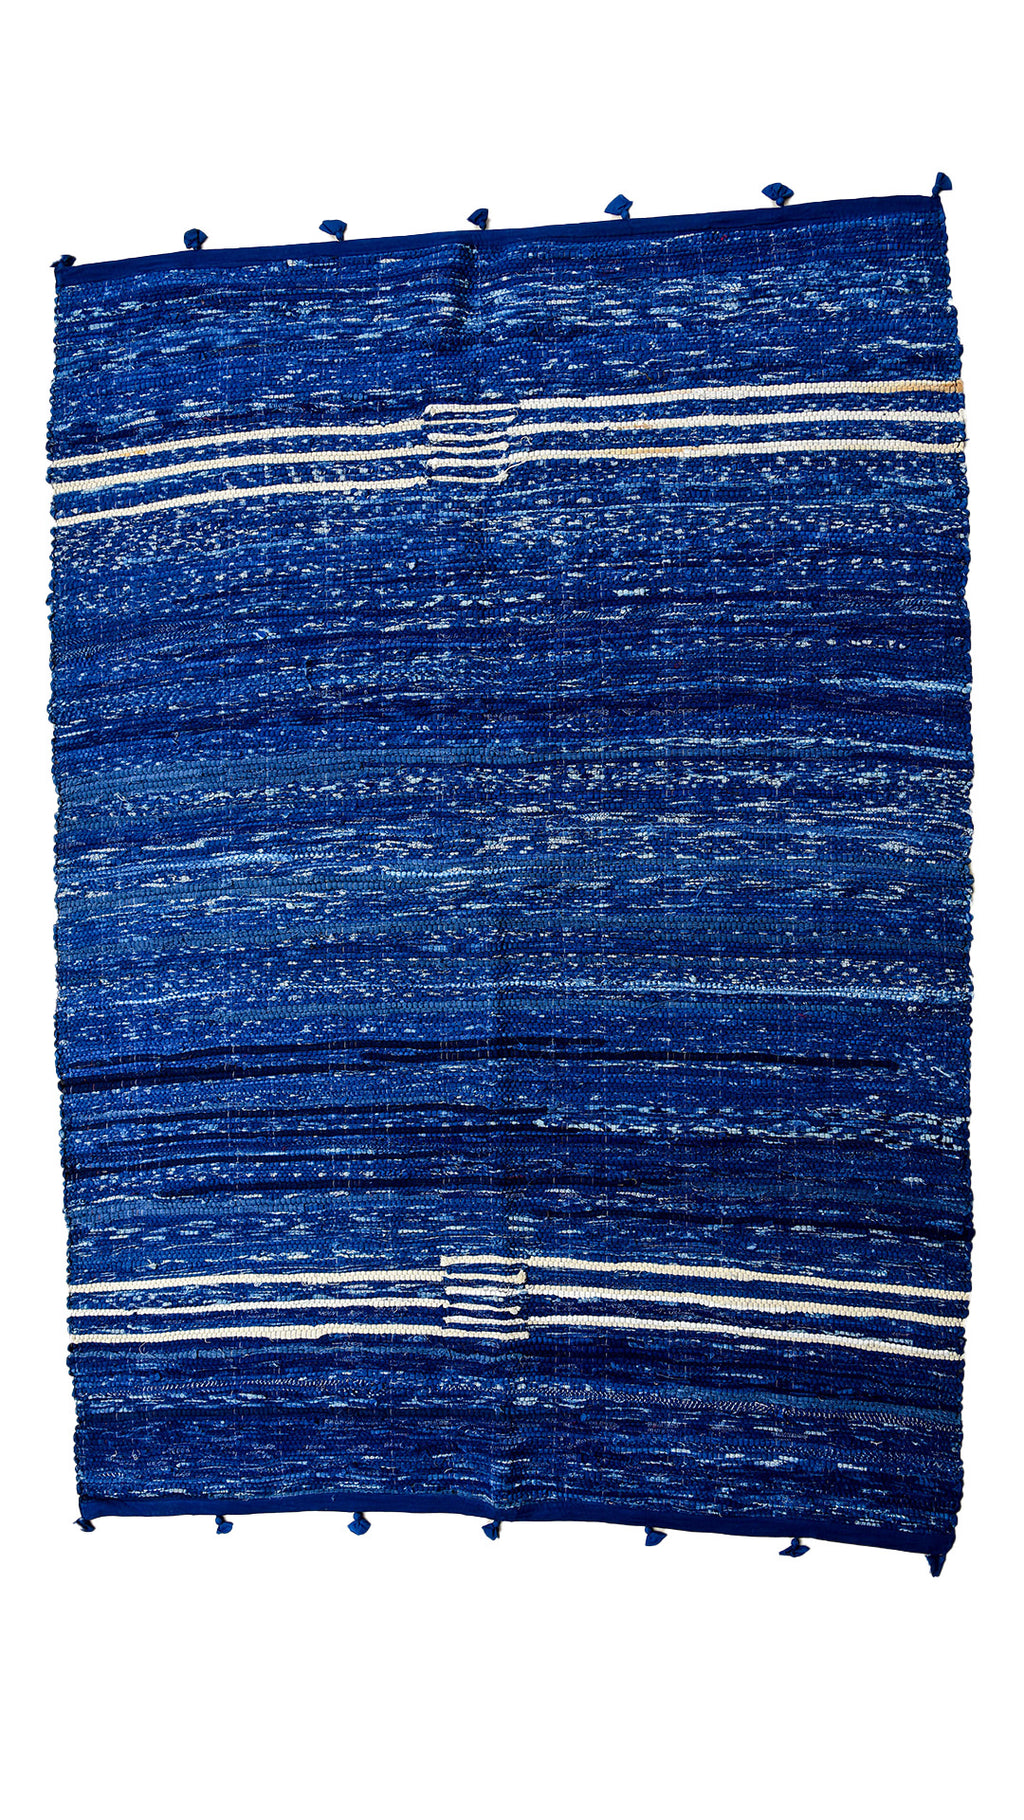 Indigo Rug from fabric leftovers - Aavaran Udaipur